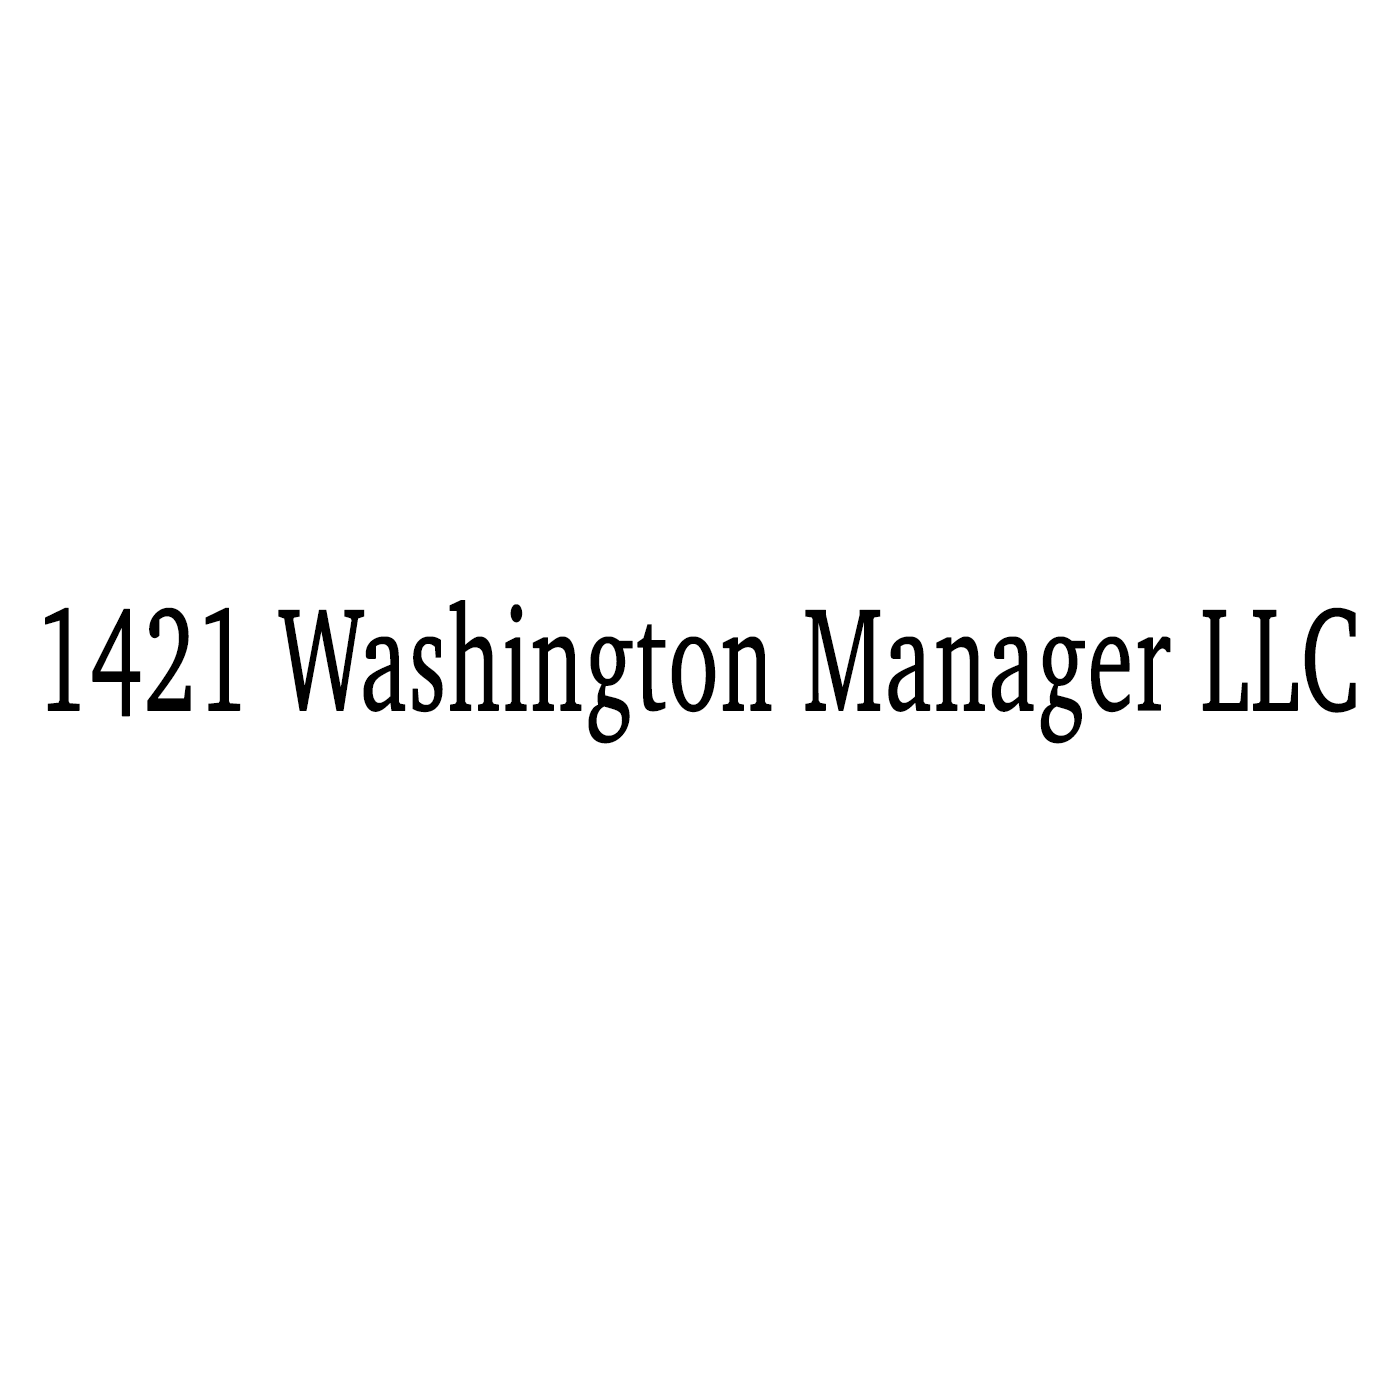 1421 washington manager llc